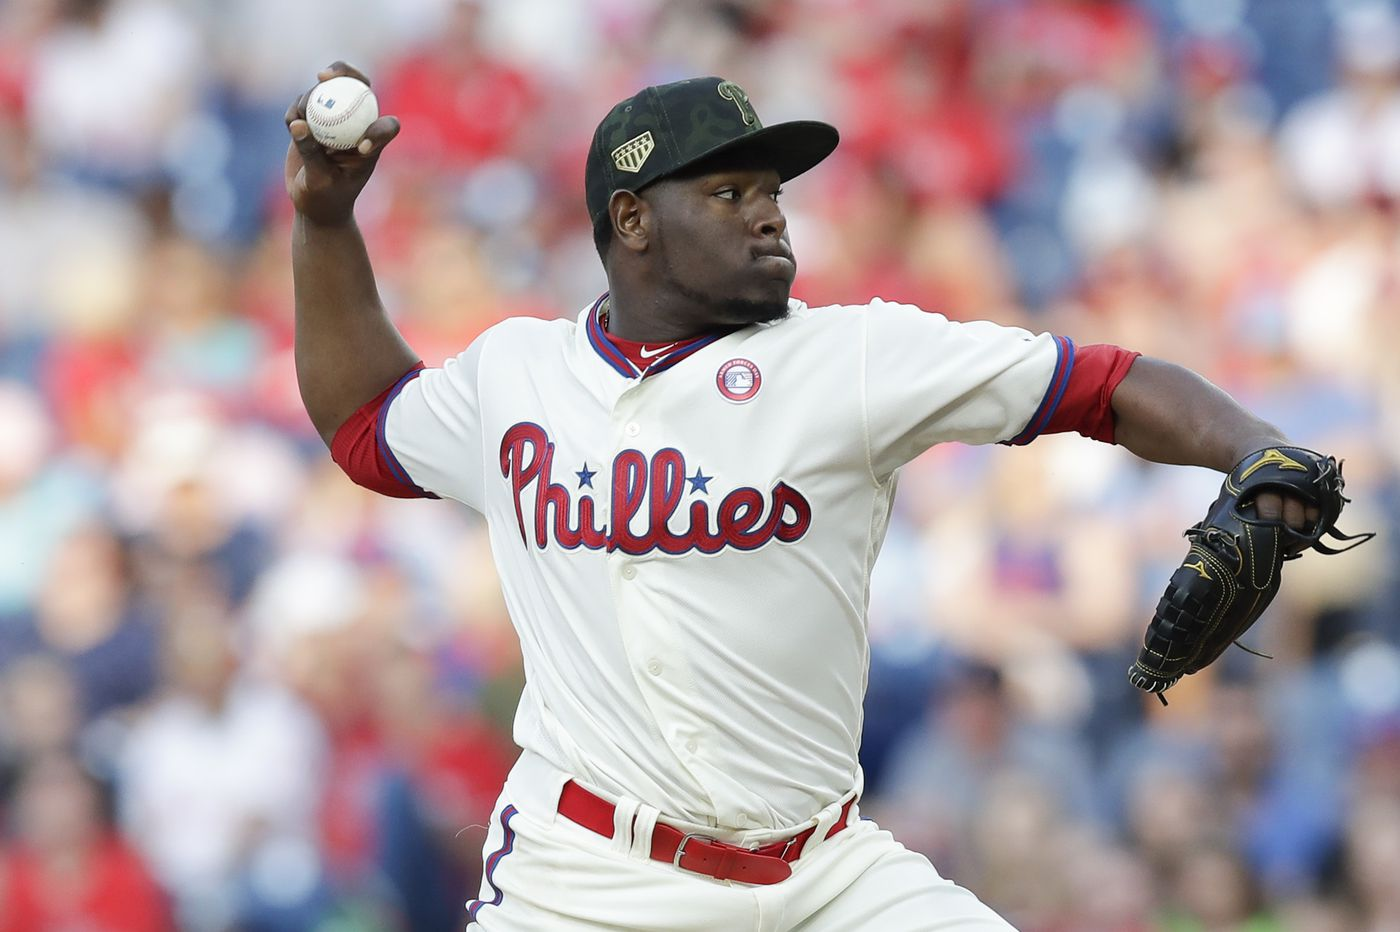 Gabe Kapler won't call Hector Neris a closer, but he wants to call him an All-Star | Extra Innings